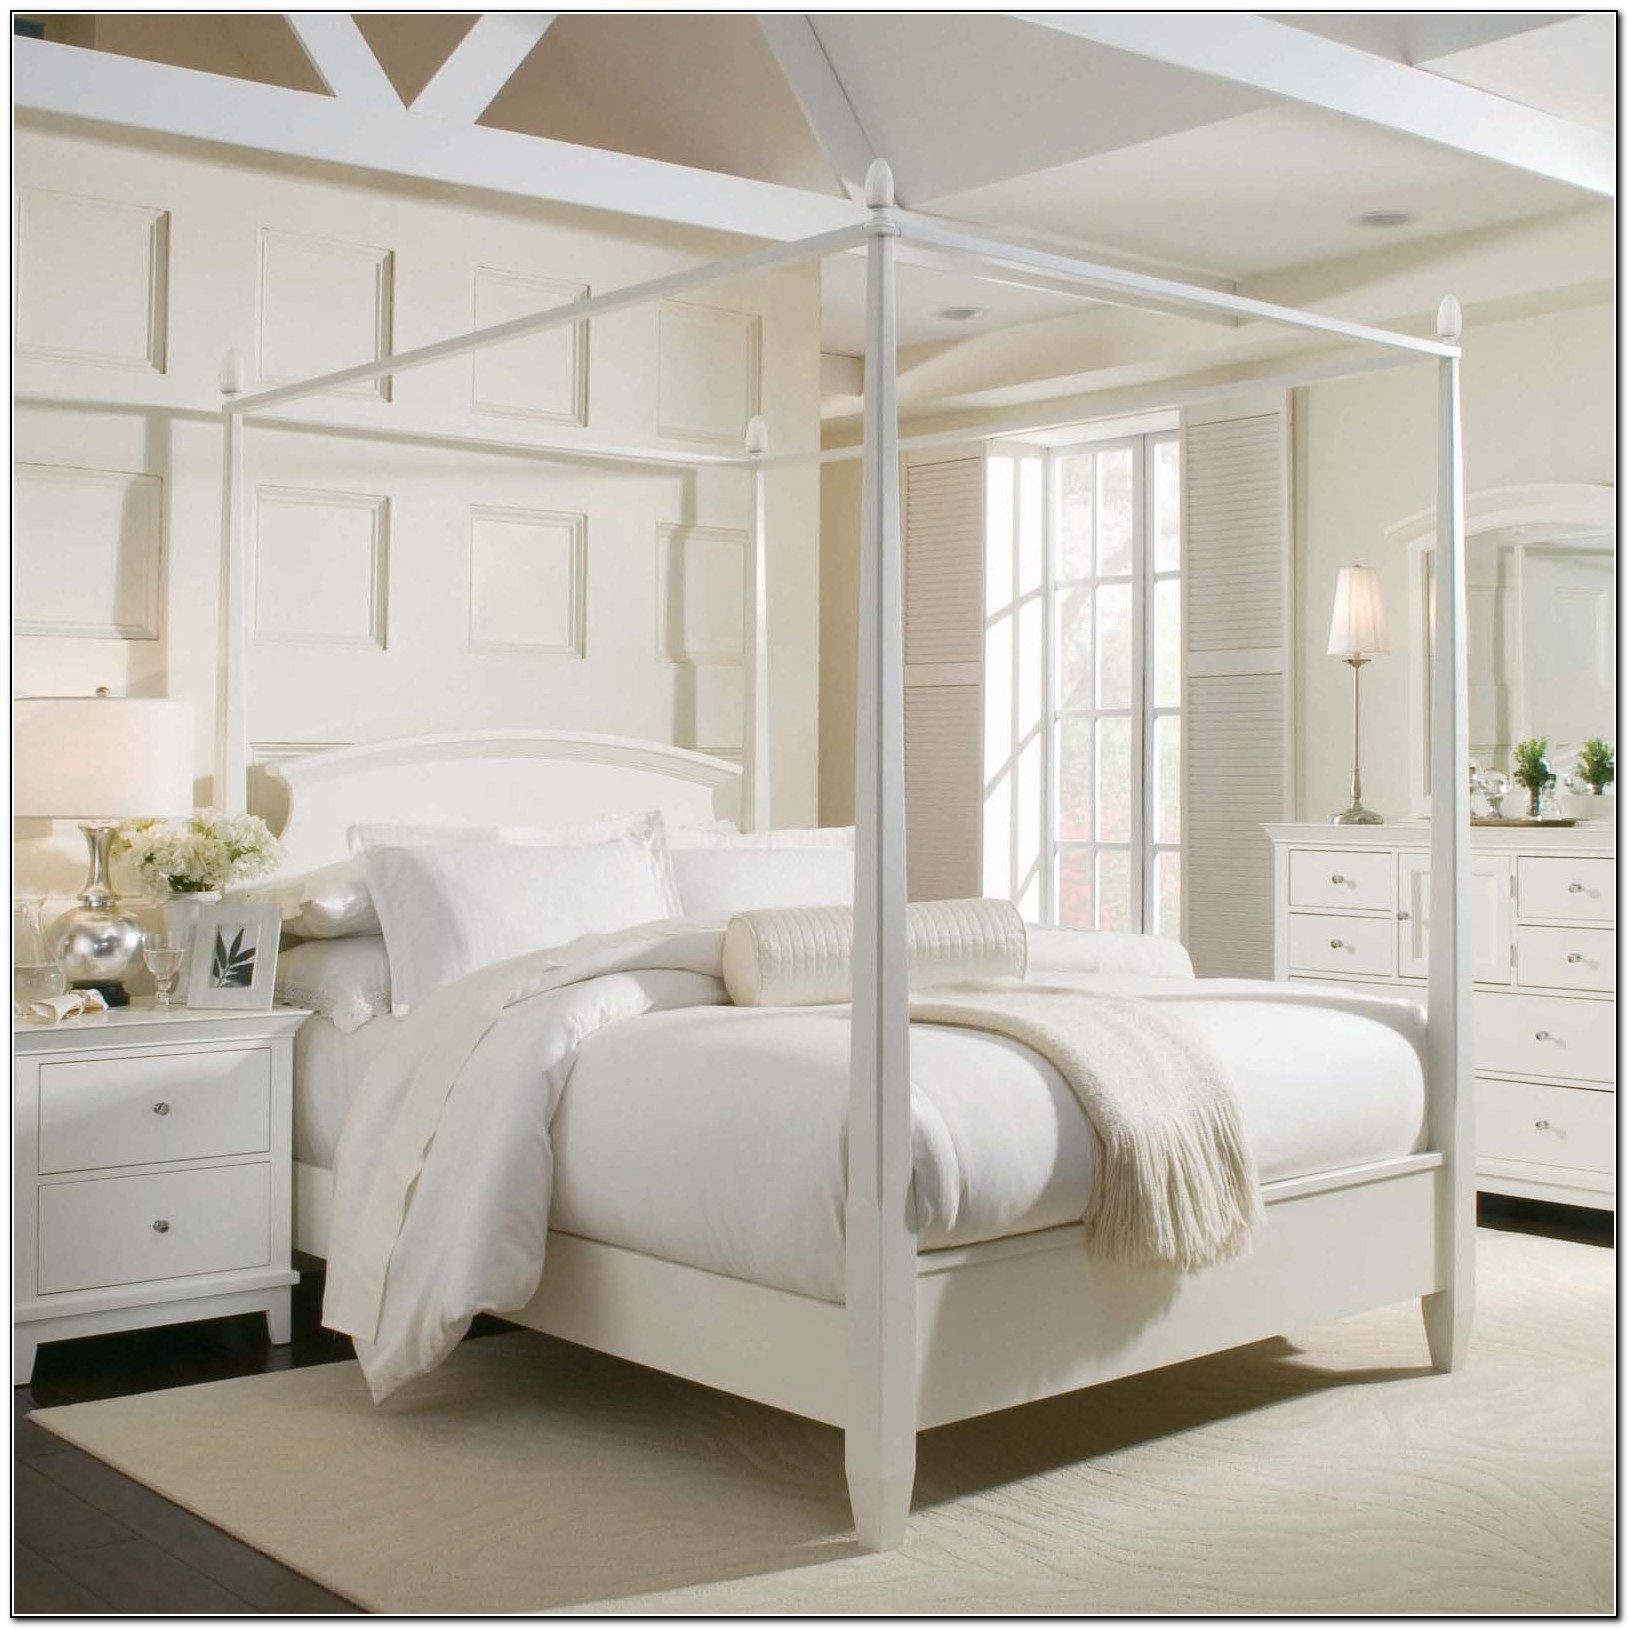 King Size Canopy Bed Curtains